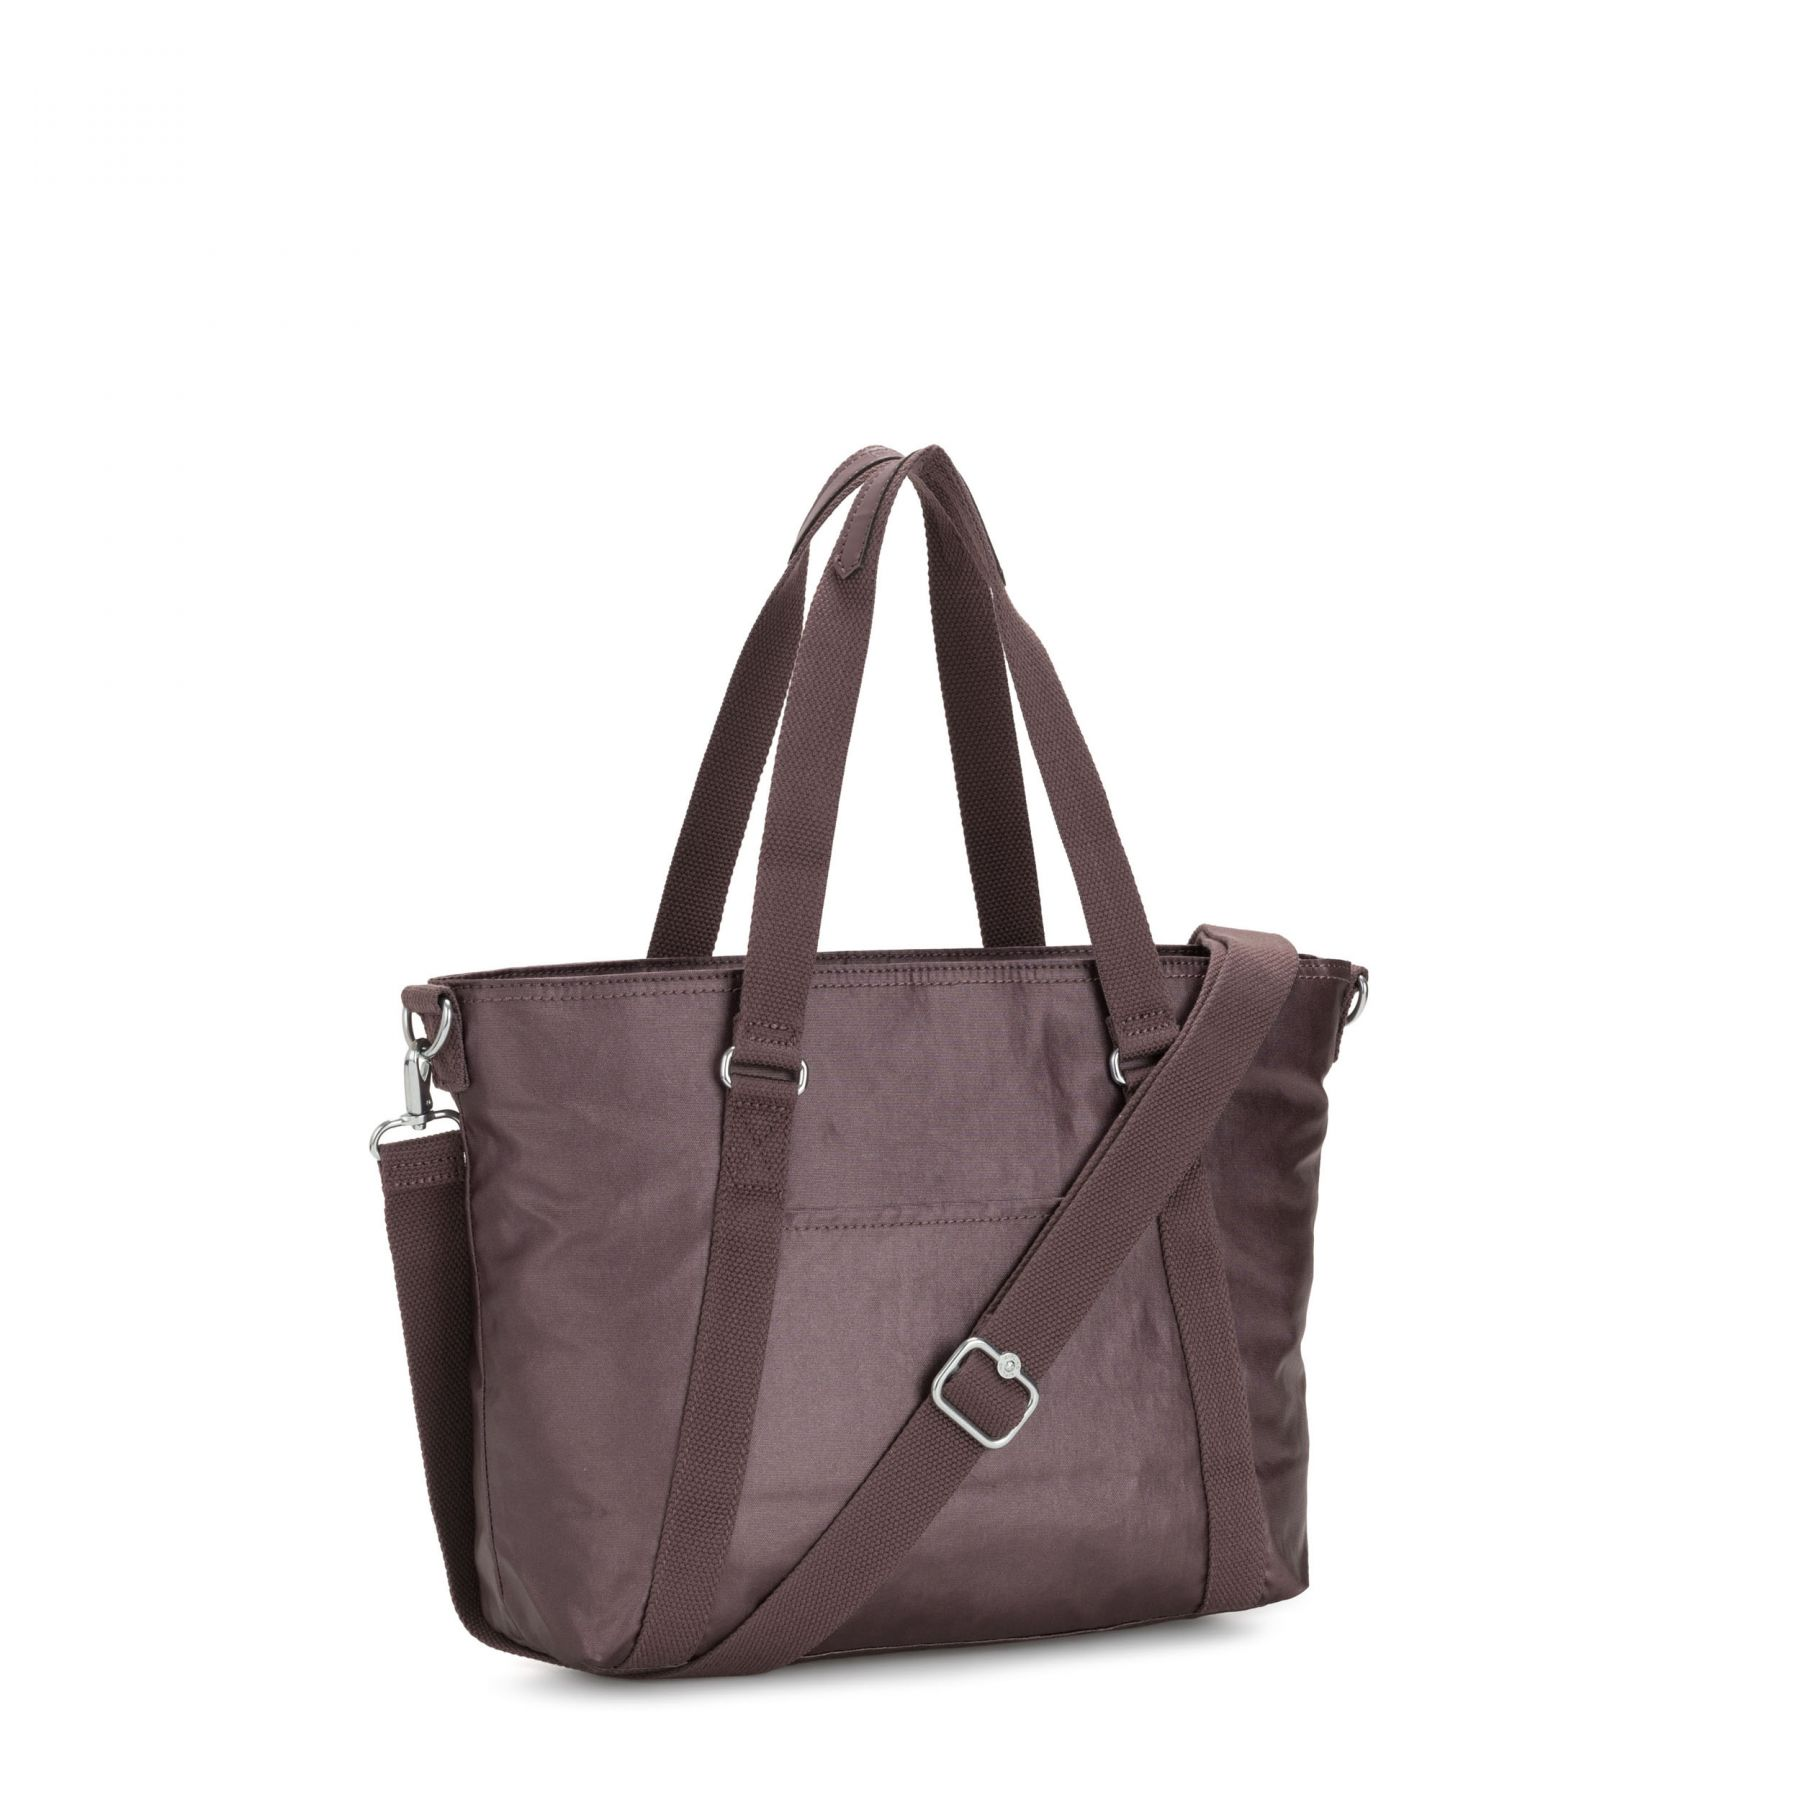 SKYLER S VIP OFFERS by Kipling - Back view